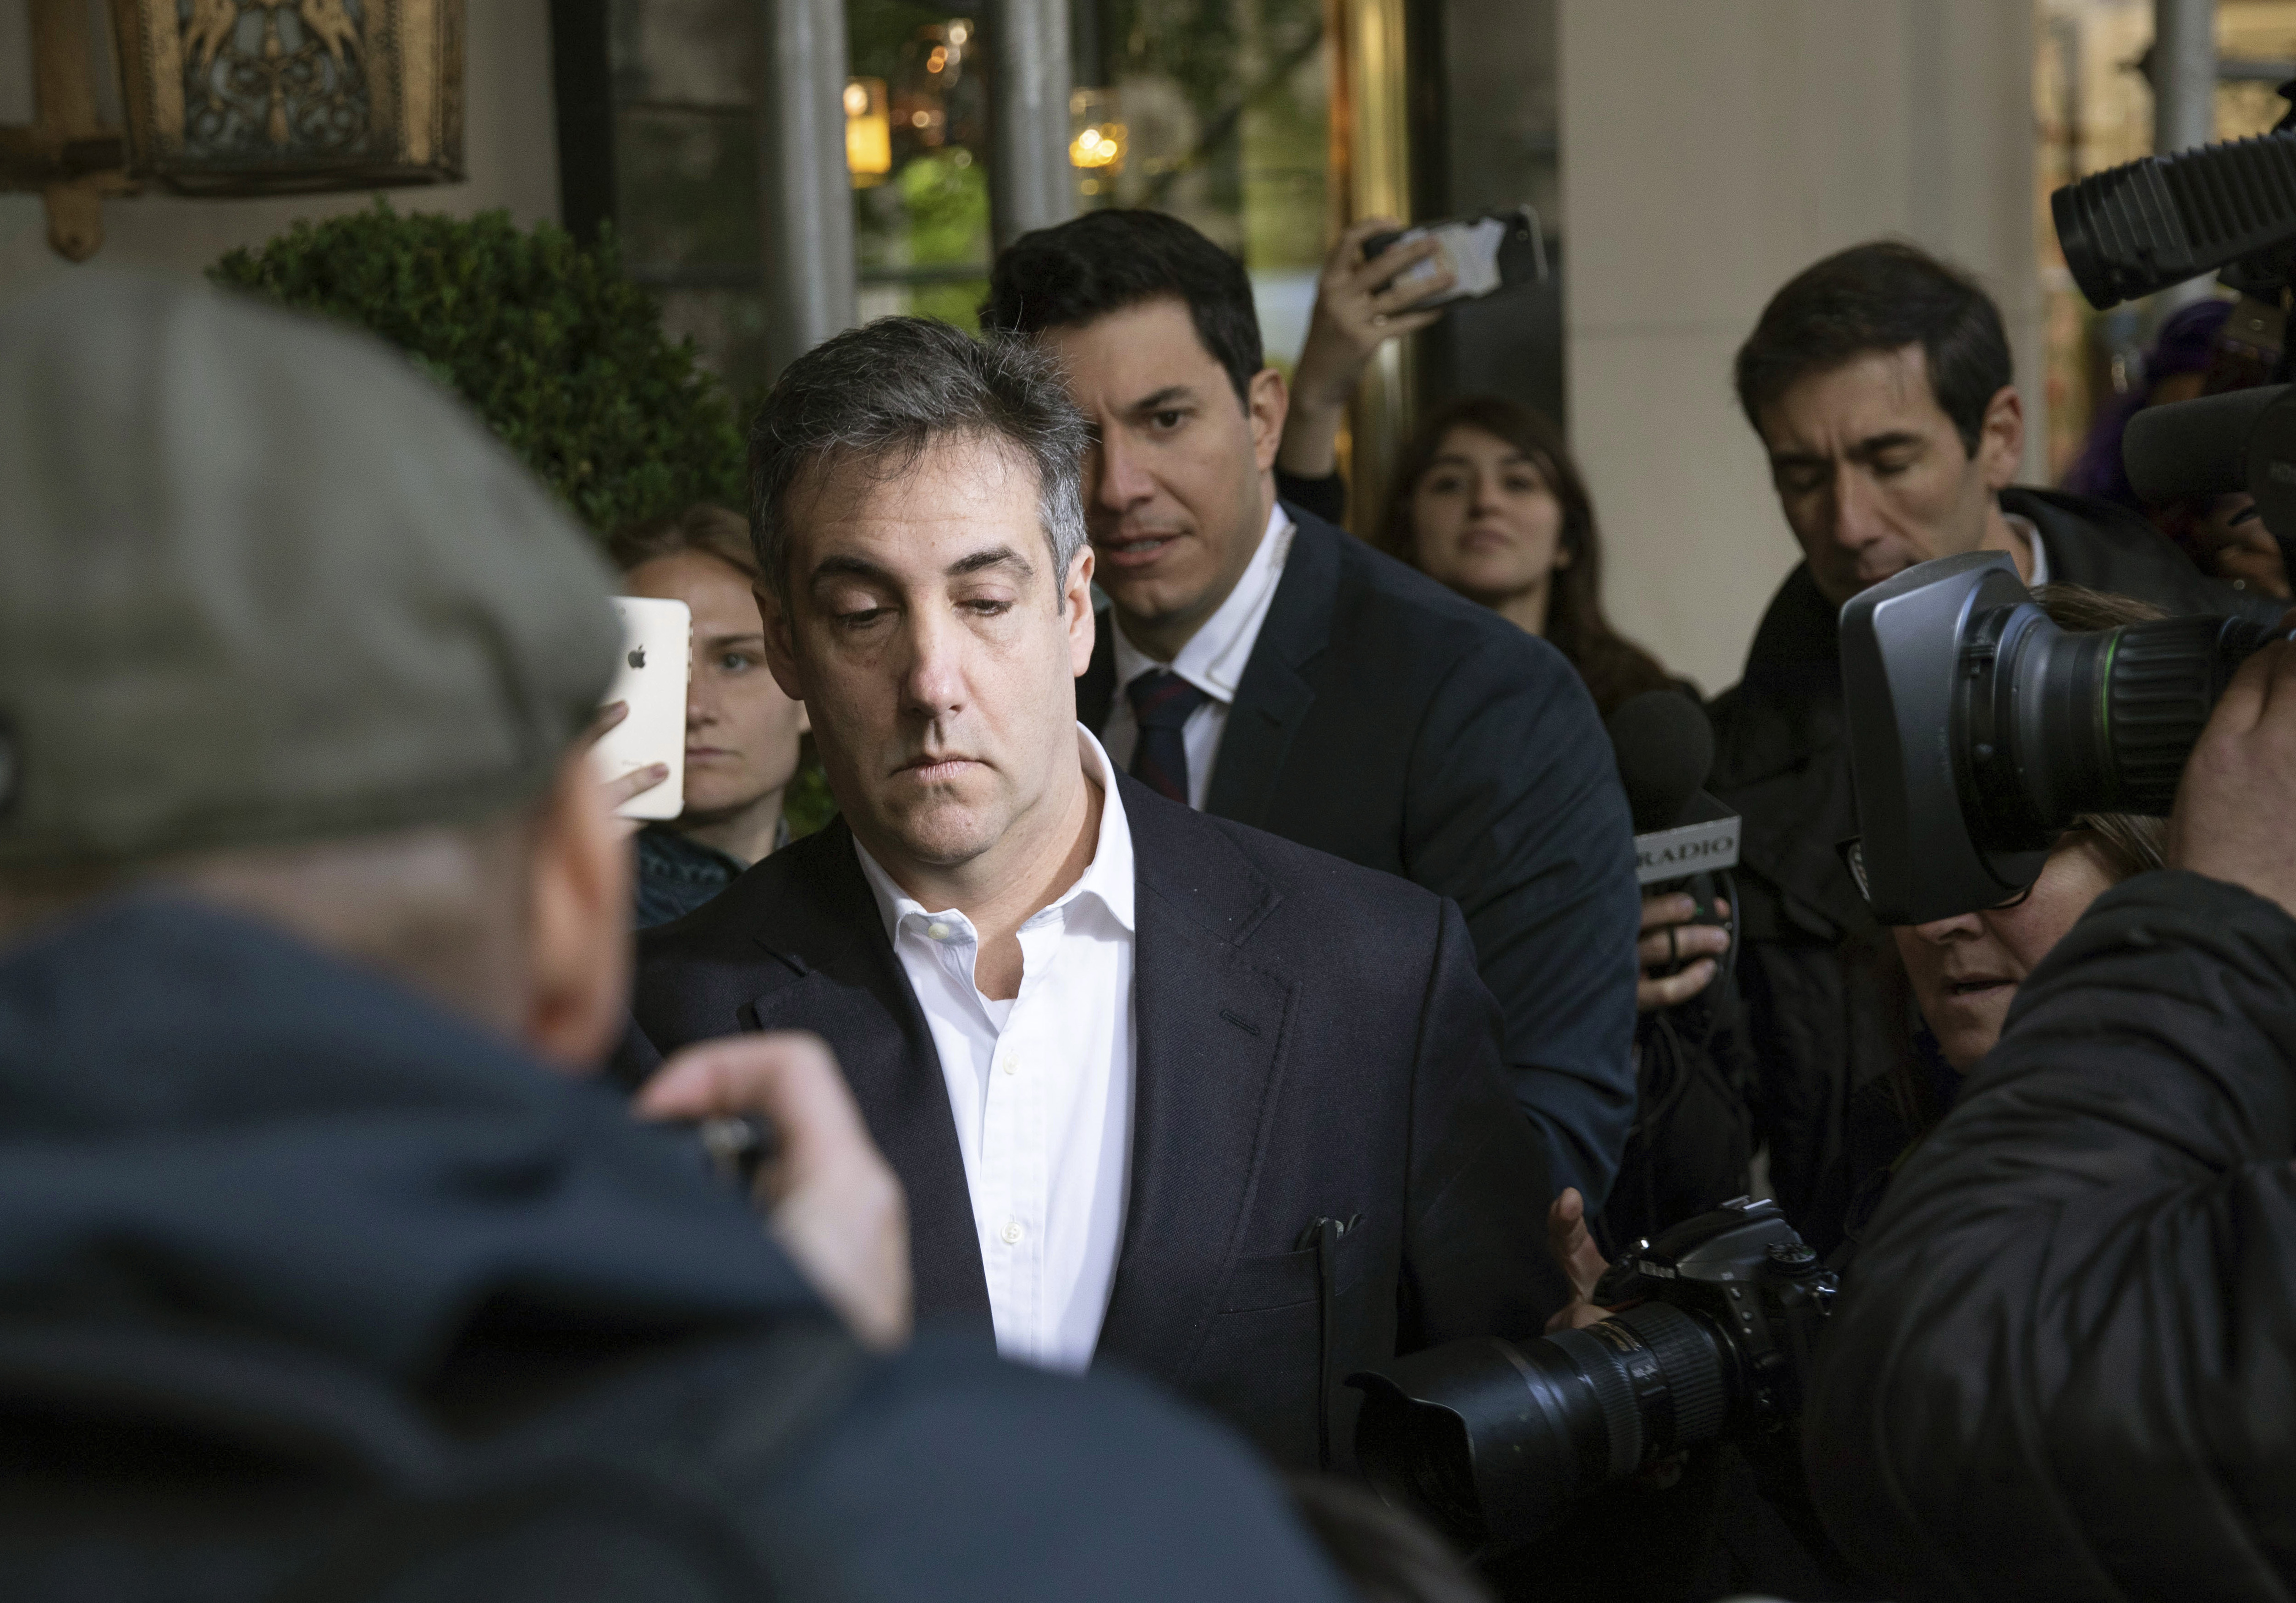 Michael Cohen, former attorney to President Donald Trump, leaves his apartment building before beginning his prison term, May 6, 2019, in New York.